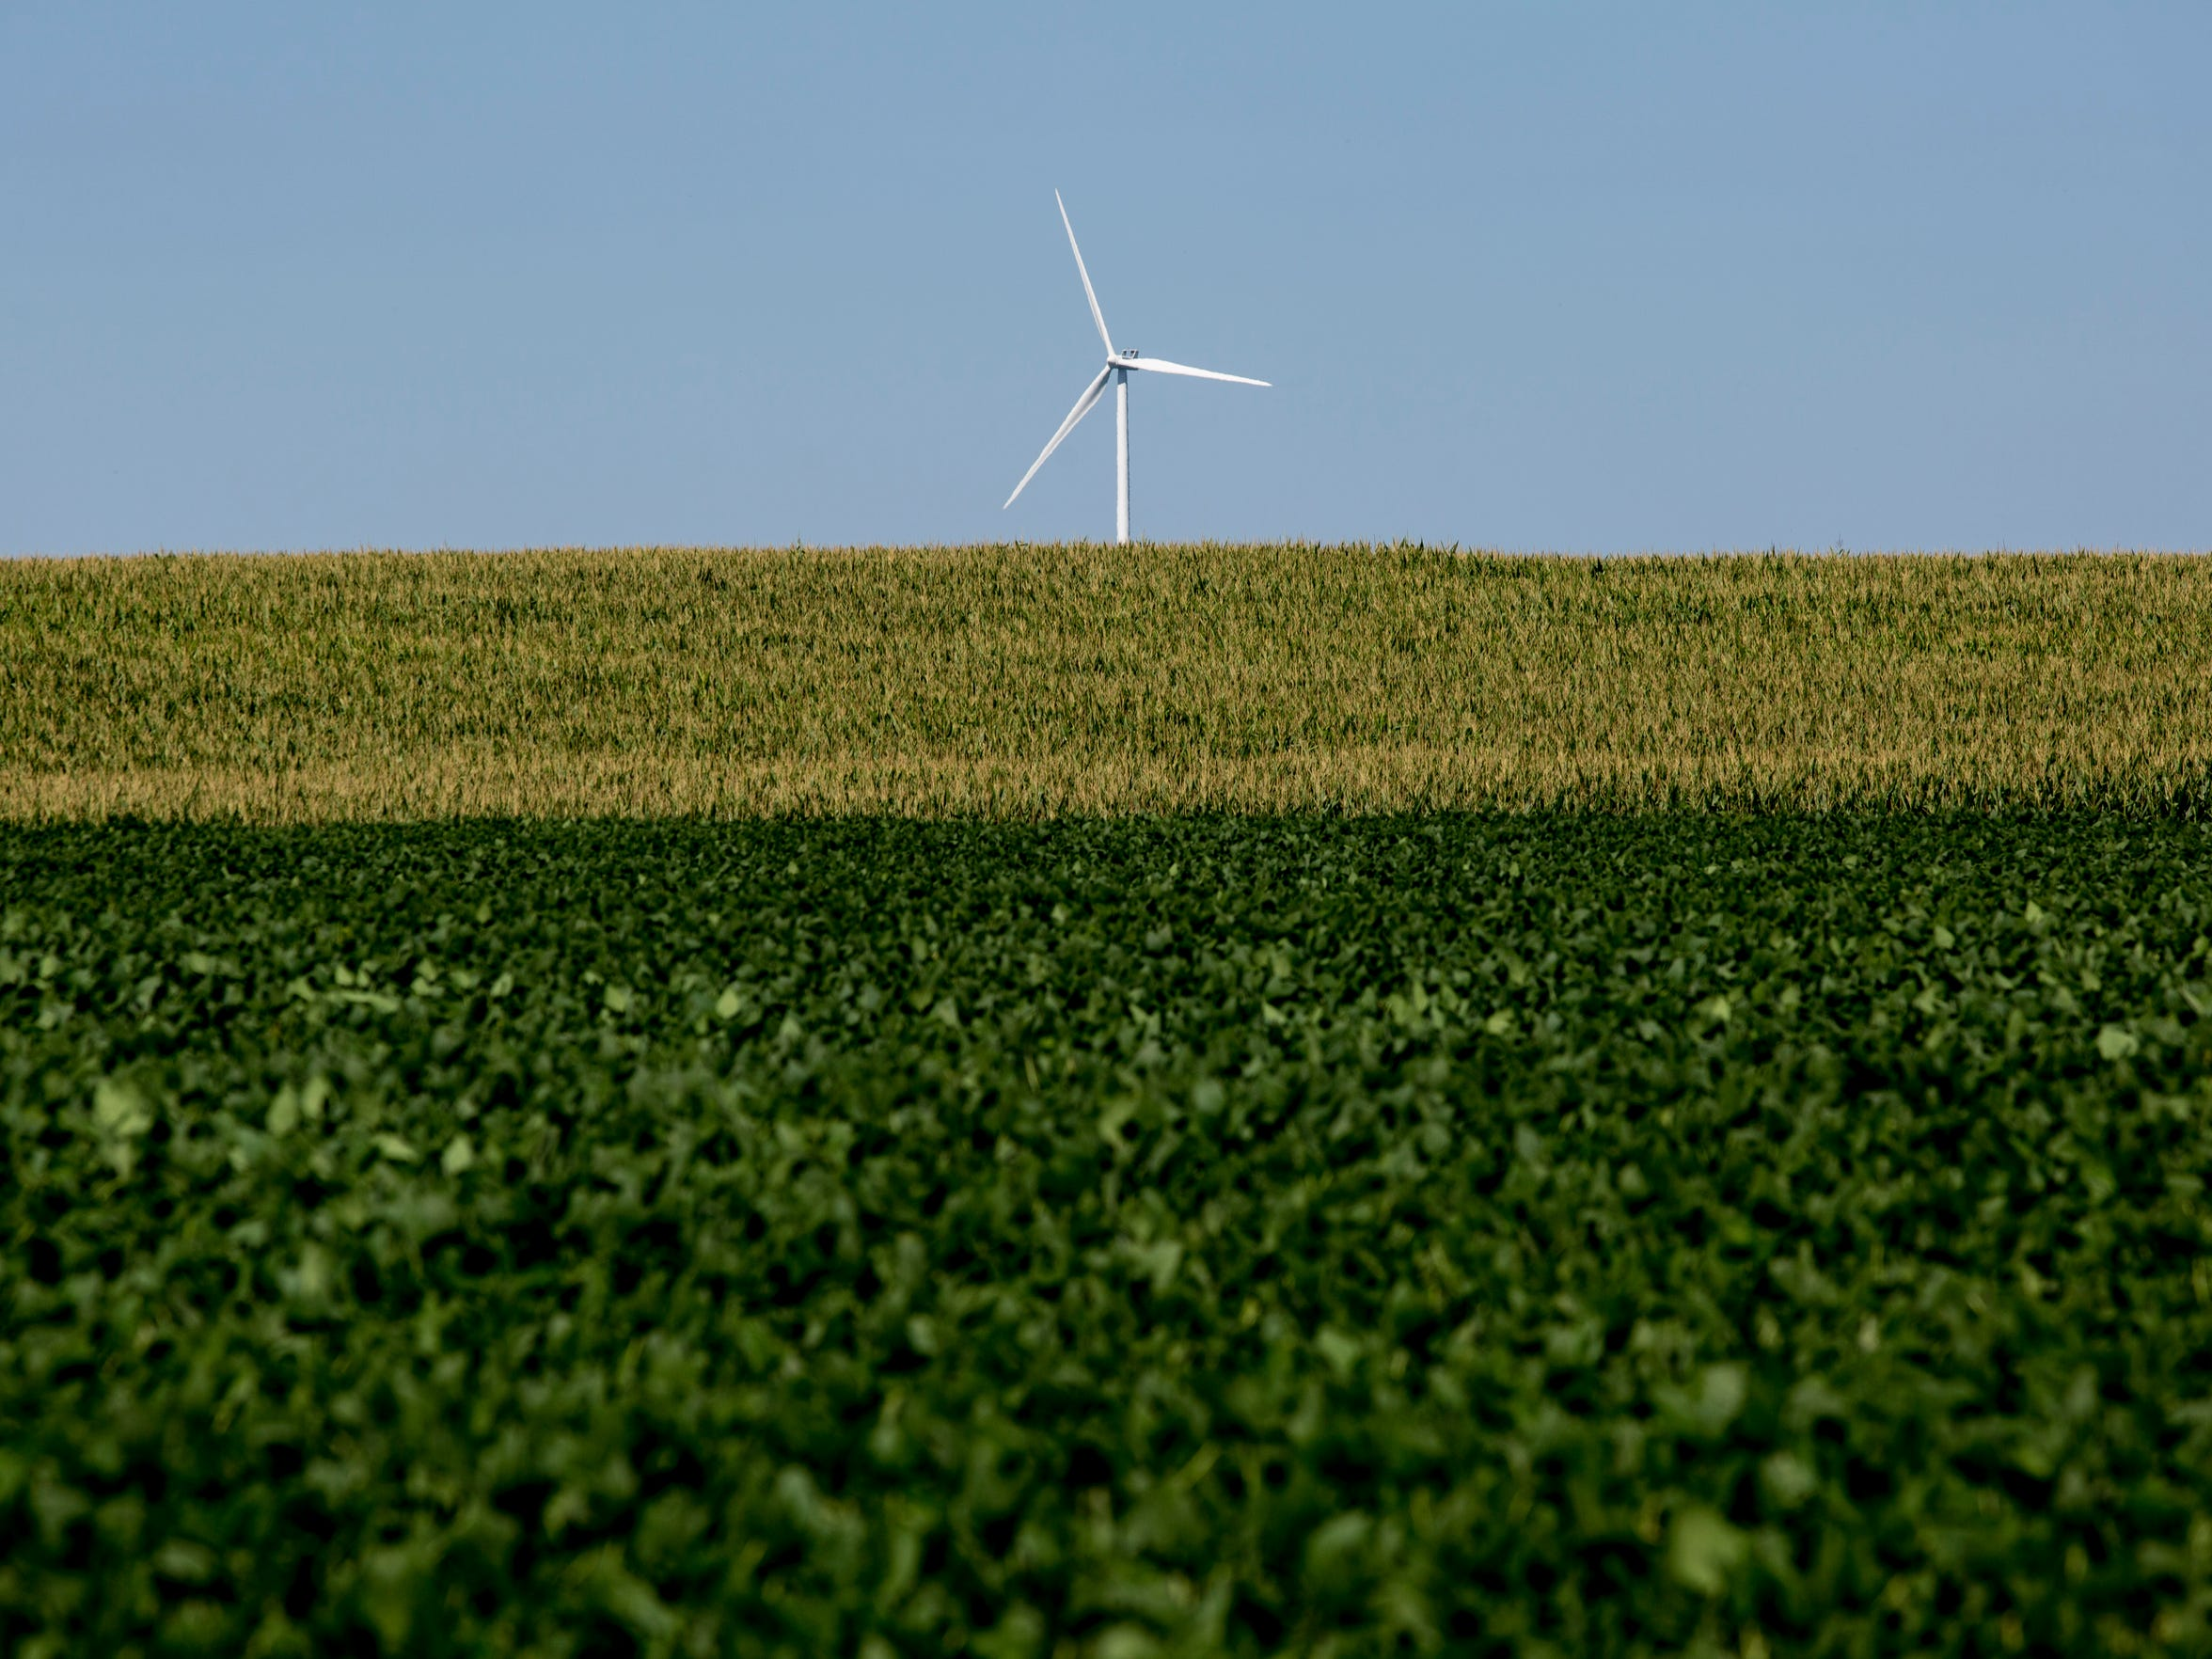 A wind turbine rises above a hill covered in crops Thursday, August 18, 2016 in Marion Township.